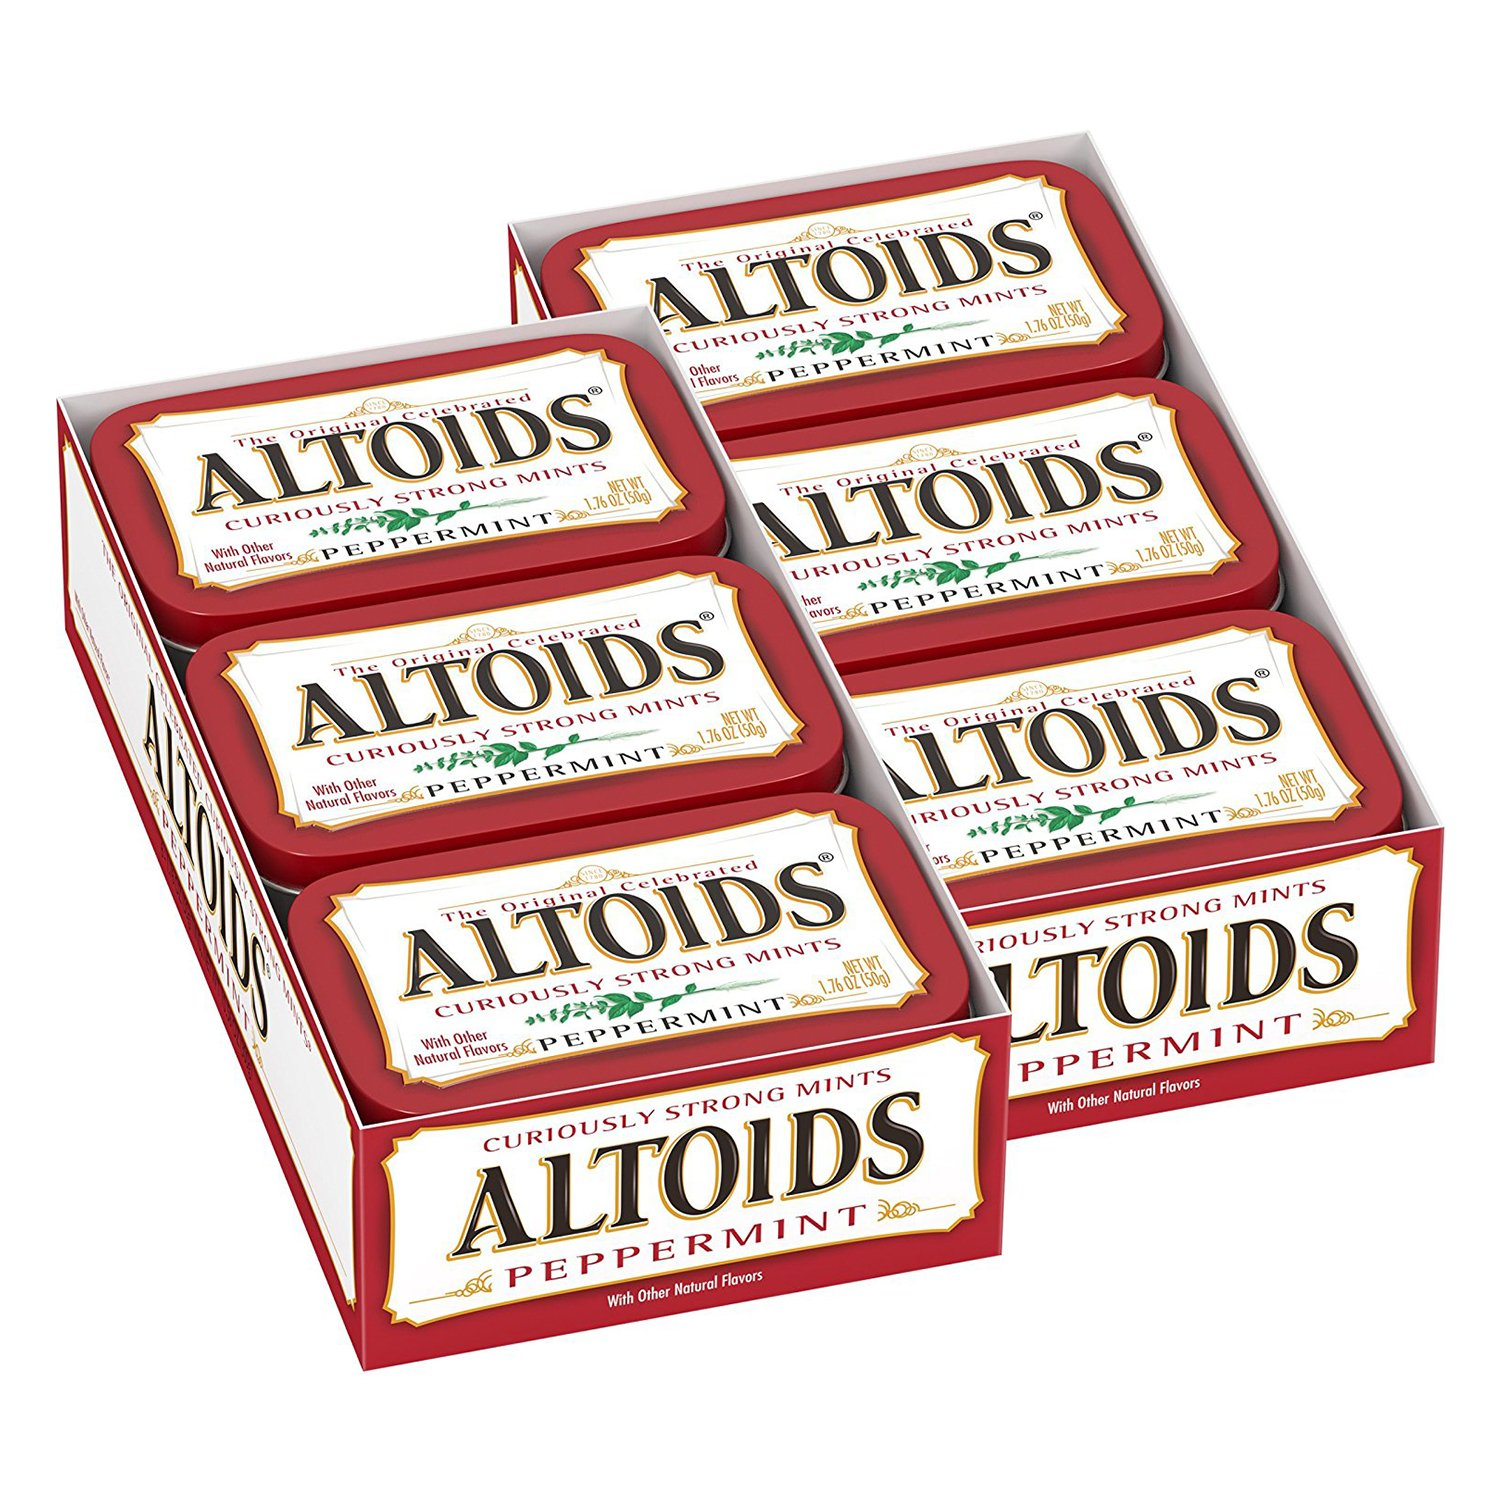 B000FKQD5G Altoids Classic Peppermint Breath Mints Singles Size 1.76-Ounce Tin 12-Count Box 81pBFmmTdbL